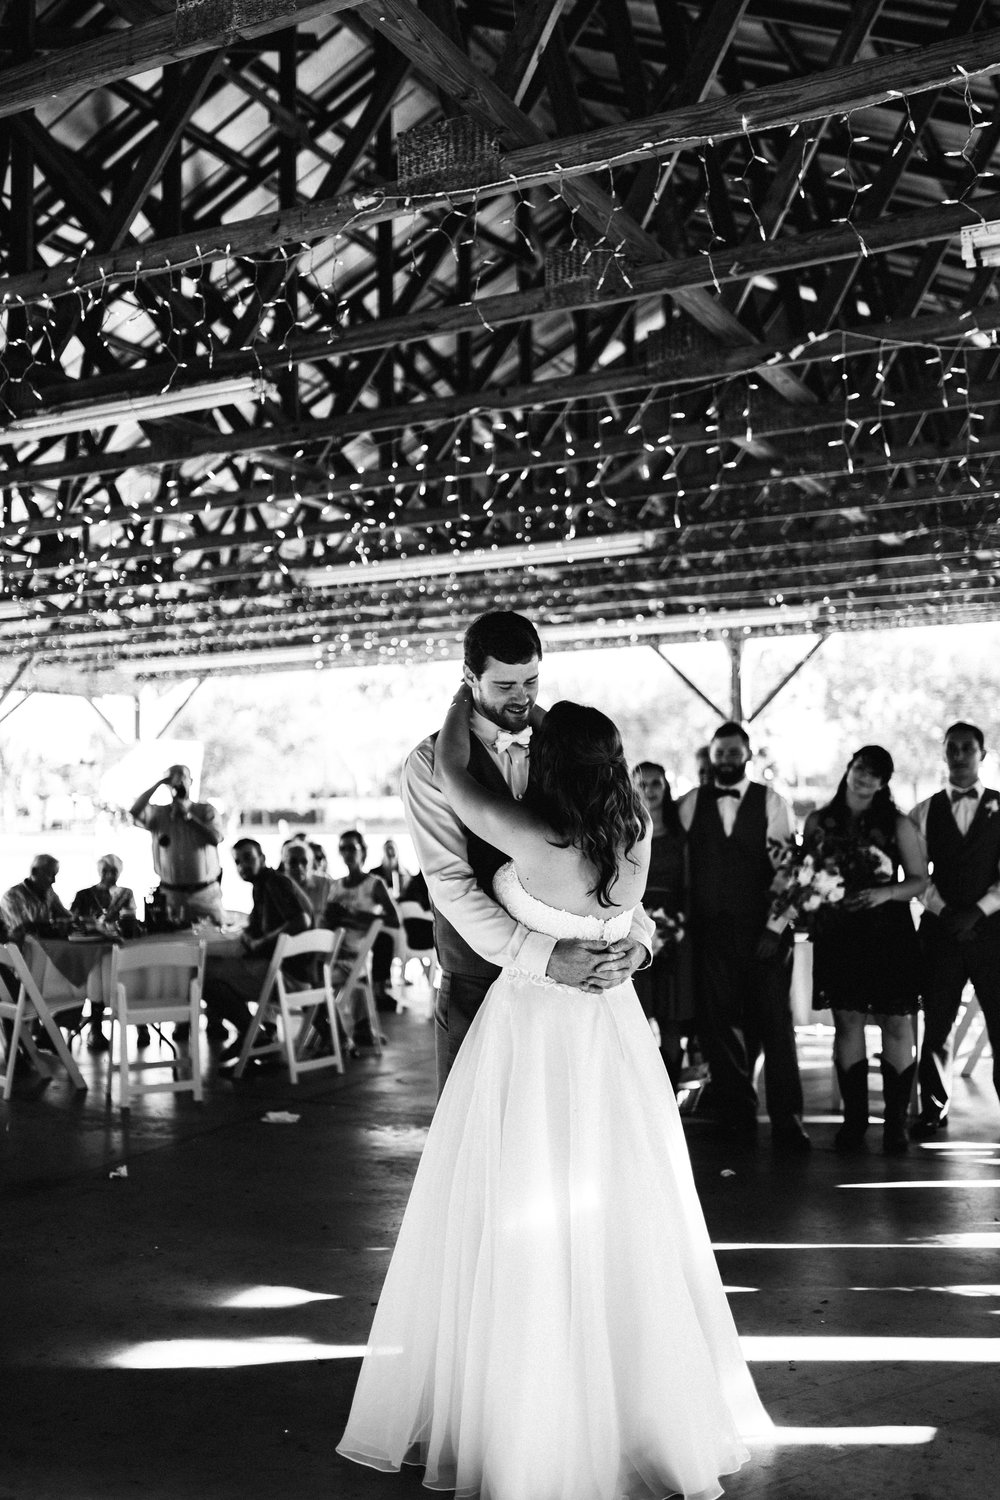 2017.10.14 Samantha and Matthew Crabtree Sarasota Wedding (446 of 708).jpg